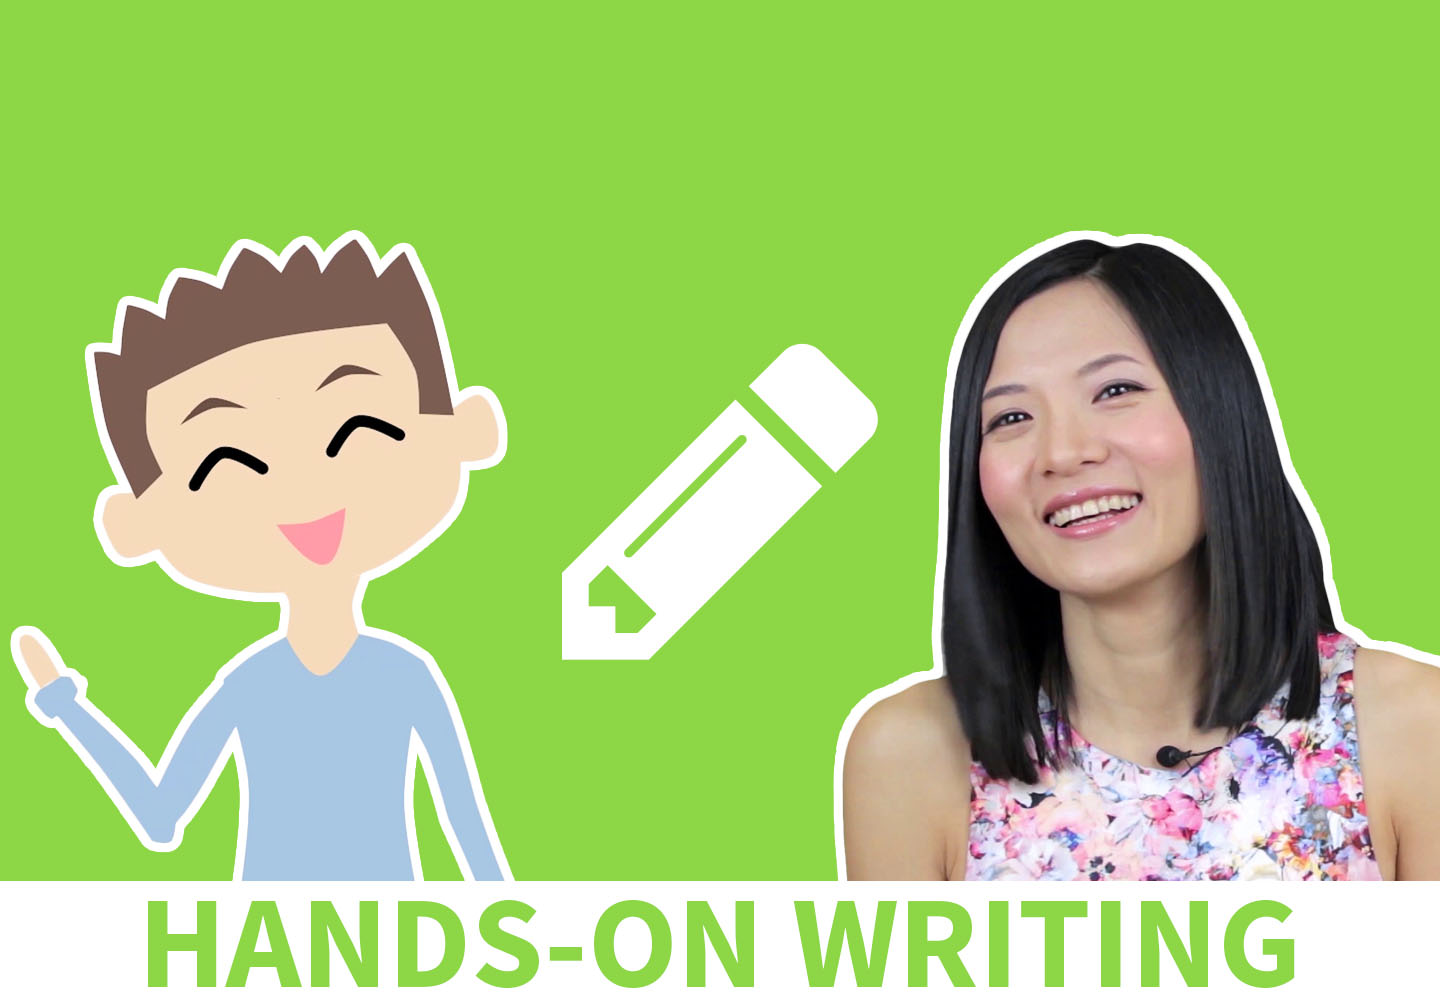 Learn Chinese characters with ChineseFor.Us Chinese Character Course. Understand the logic and learn how to write Chinese characters from zero to thousands.